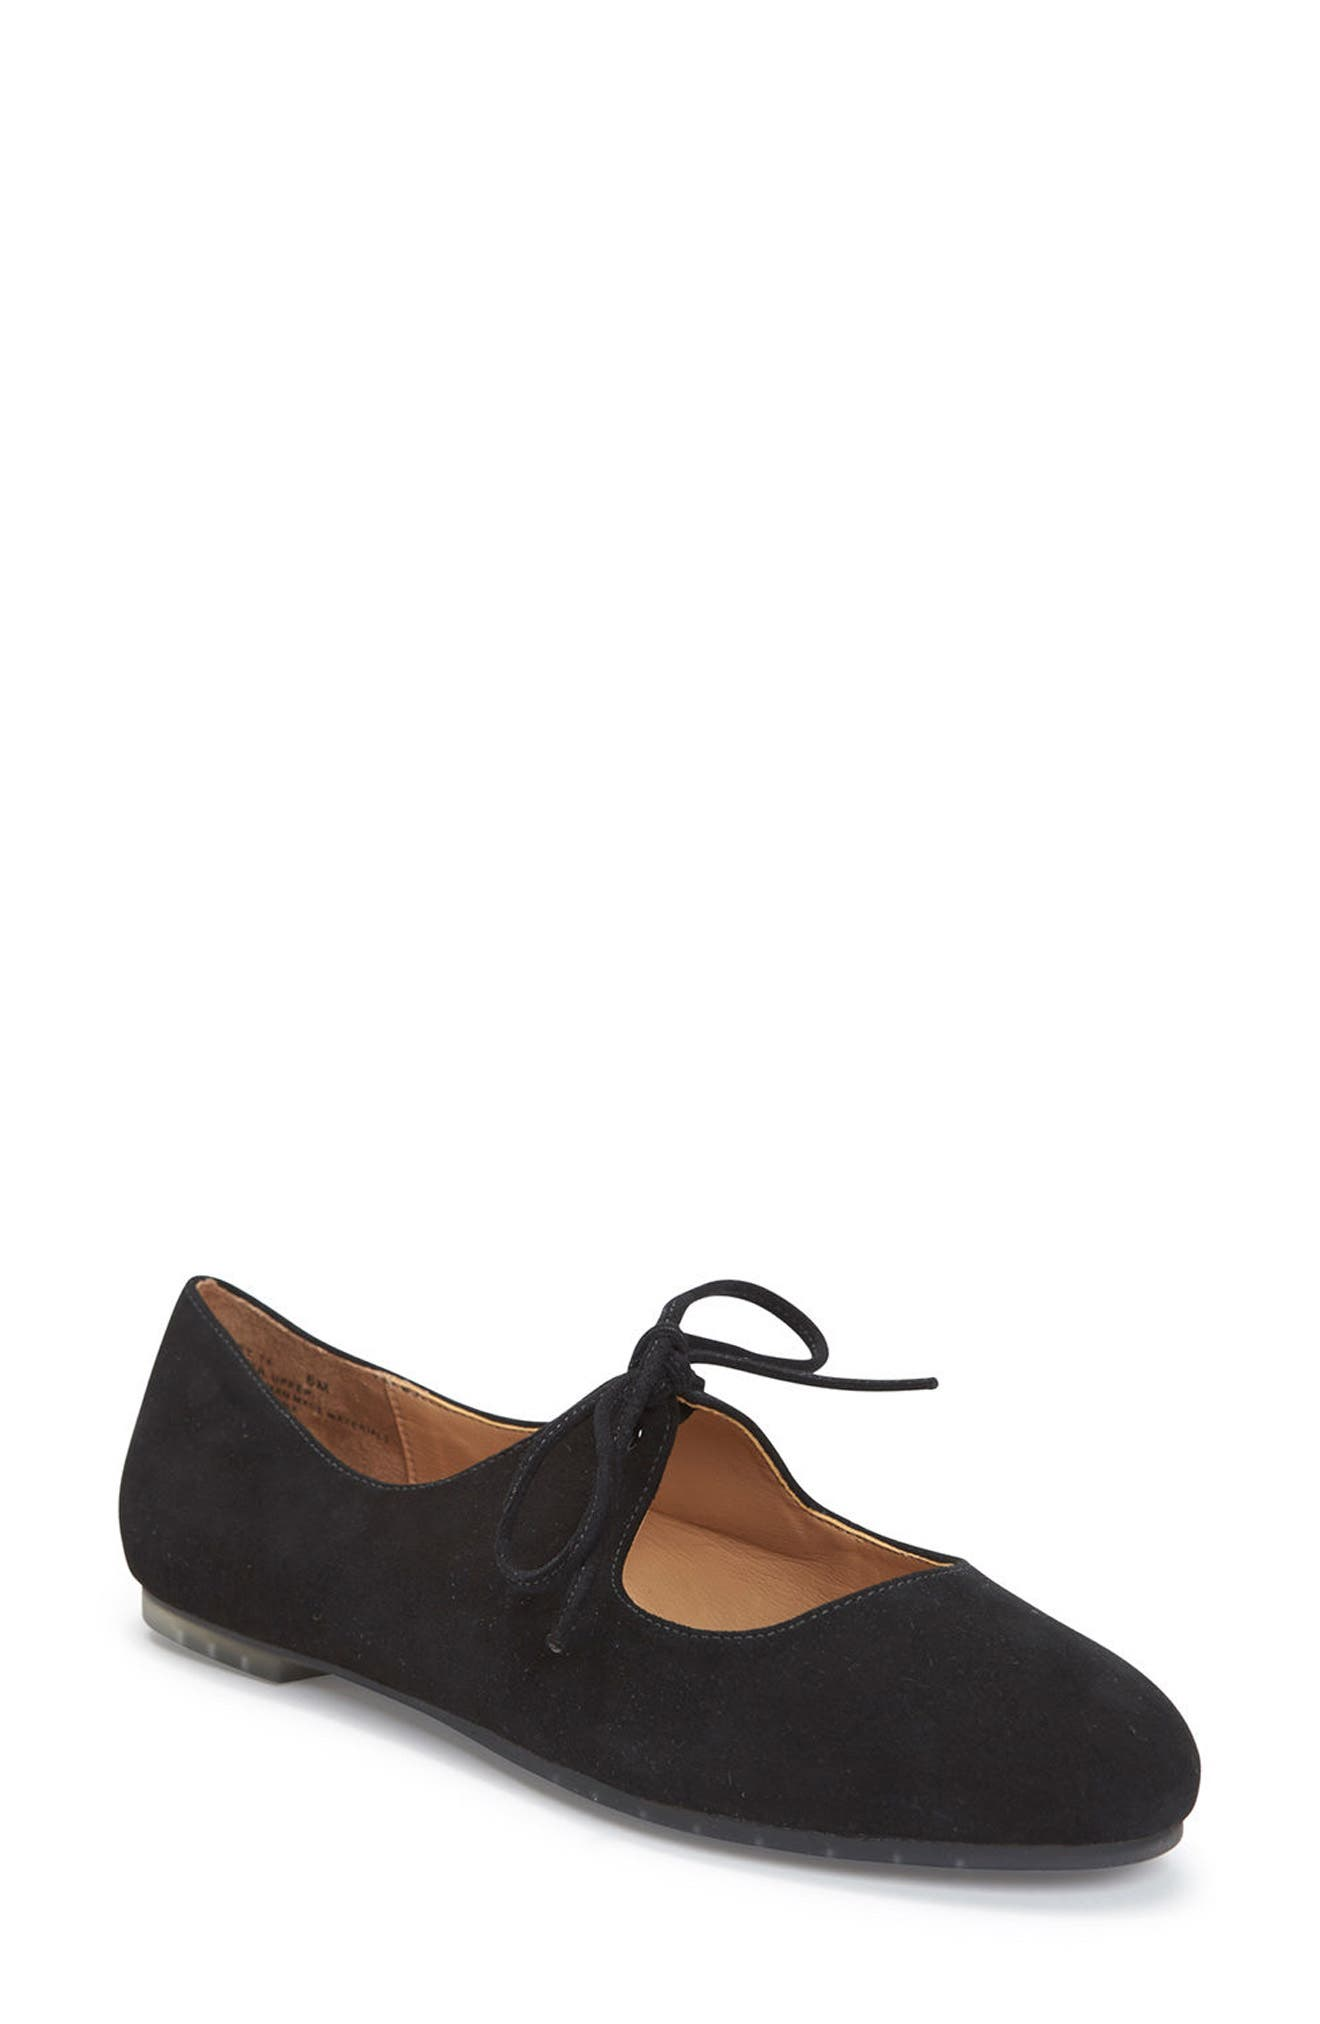 Cacey Mary Jane Flat,                             Main thumbnail 1, color,                             Black Suede